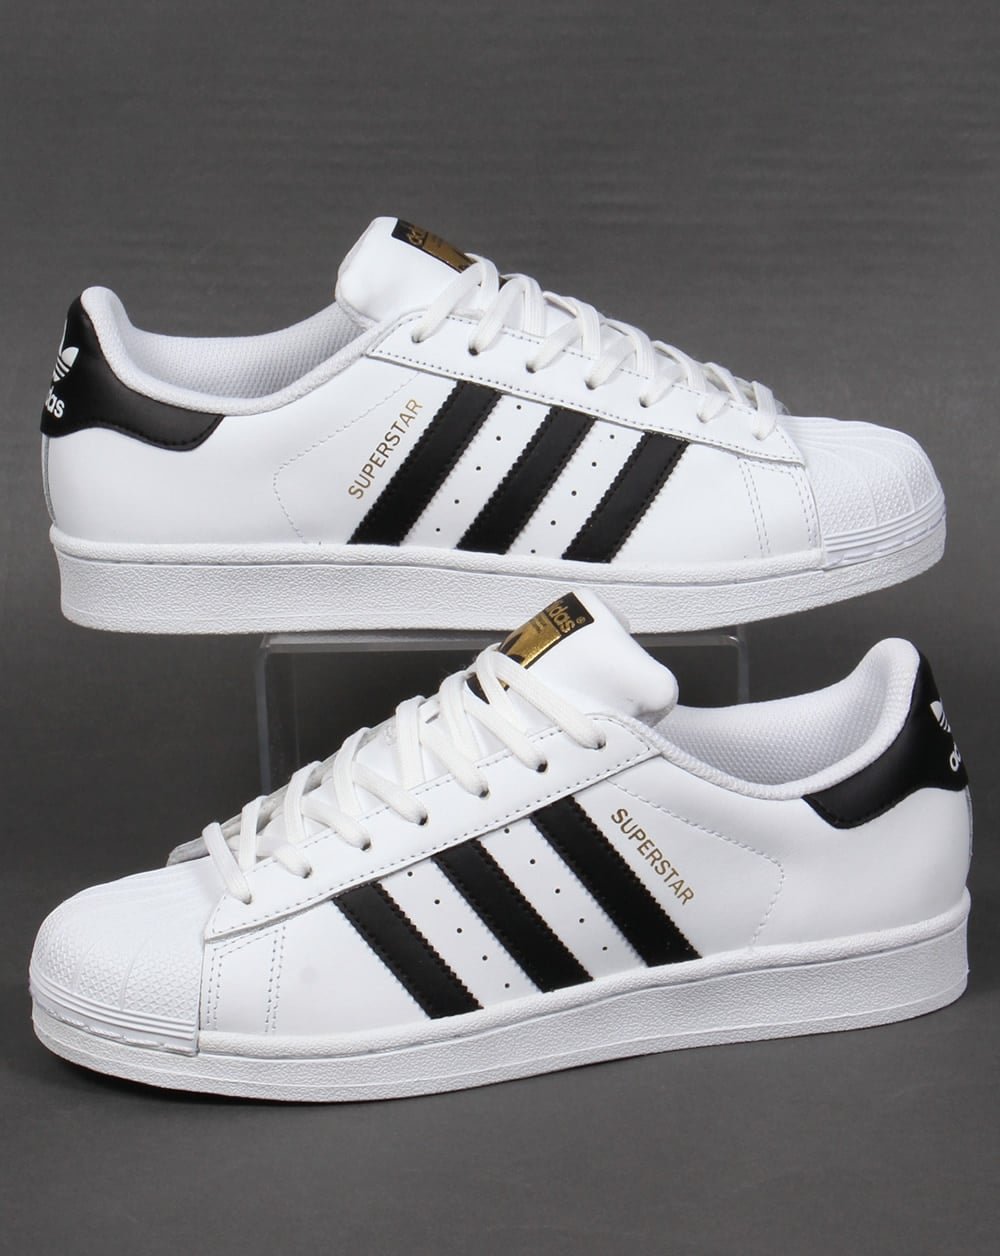 adidas Trainers Adidas Superstar Trainers White Black babcf3232